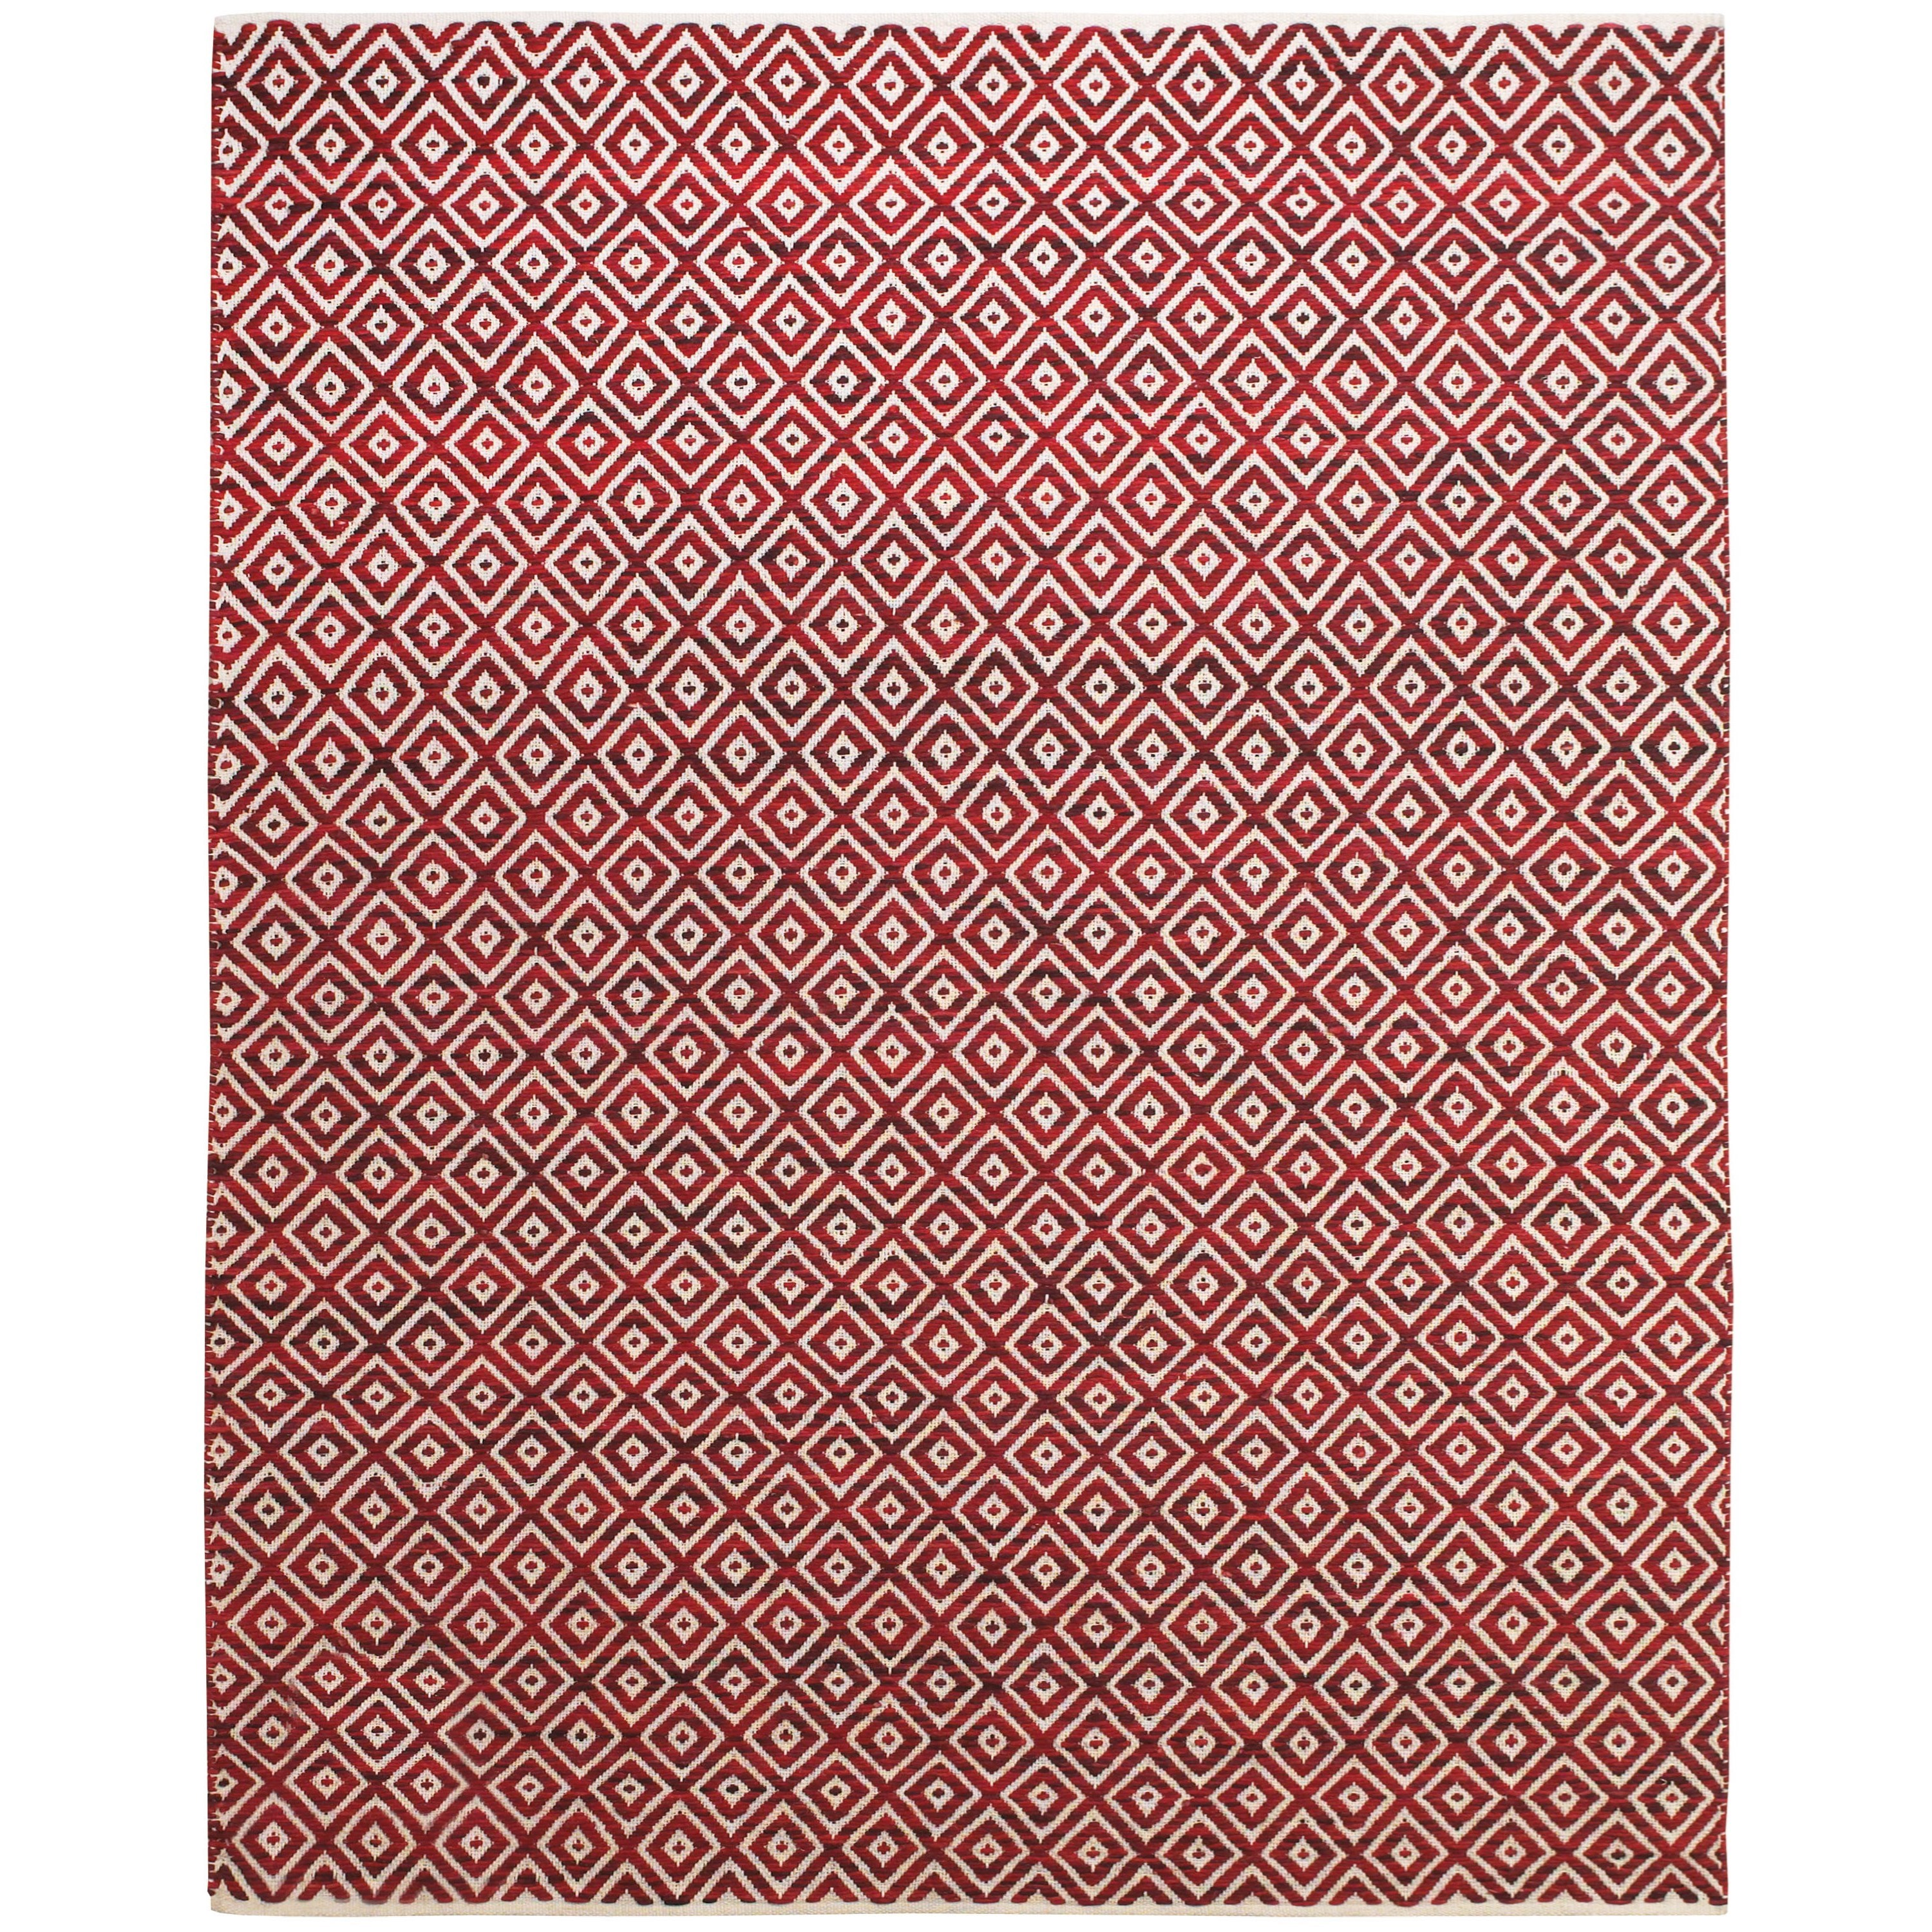 Mojave Red 2' x 3' Area Rug by Feizy Rugs at Jacksonville Furniture Mart